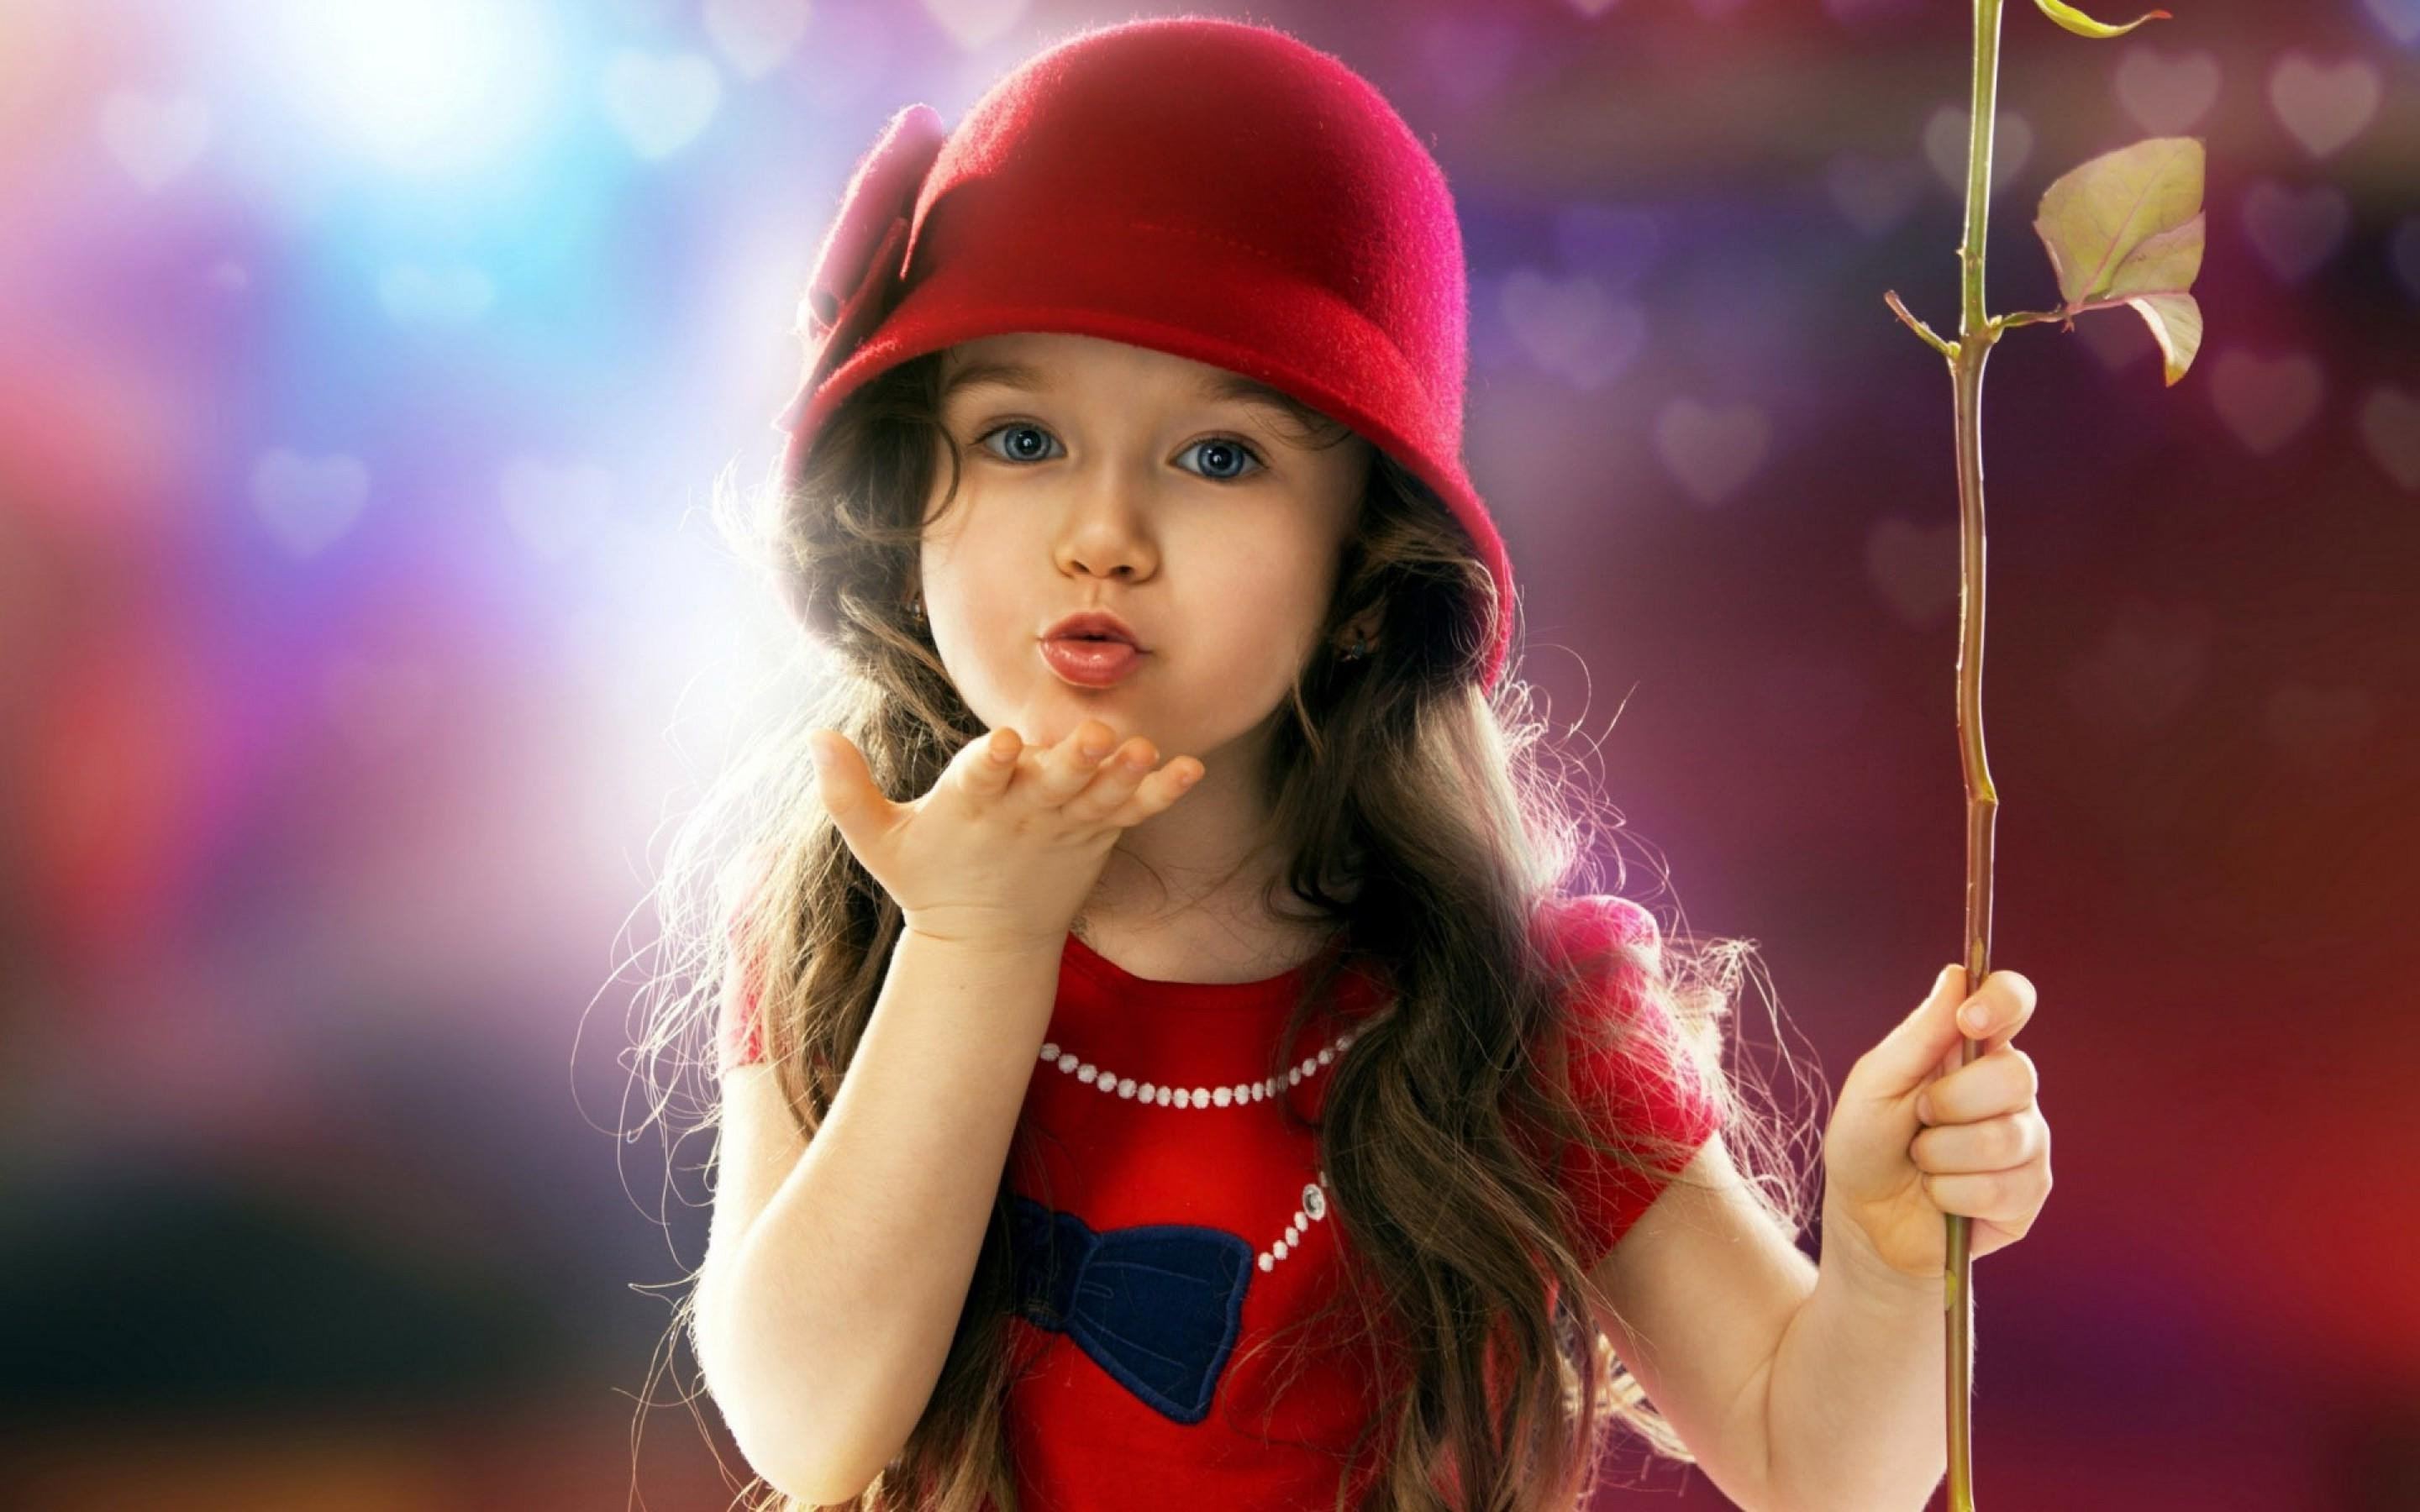 Little Girl Blowing a Kiss, HD cute, 4k Wallpapers, Images, Backgrounds, Photos and Pictures